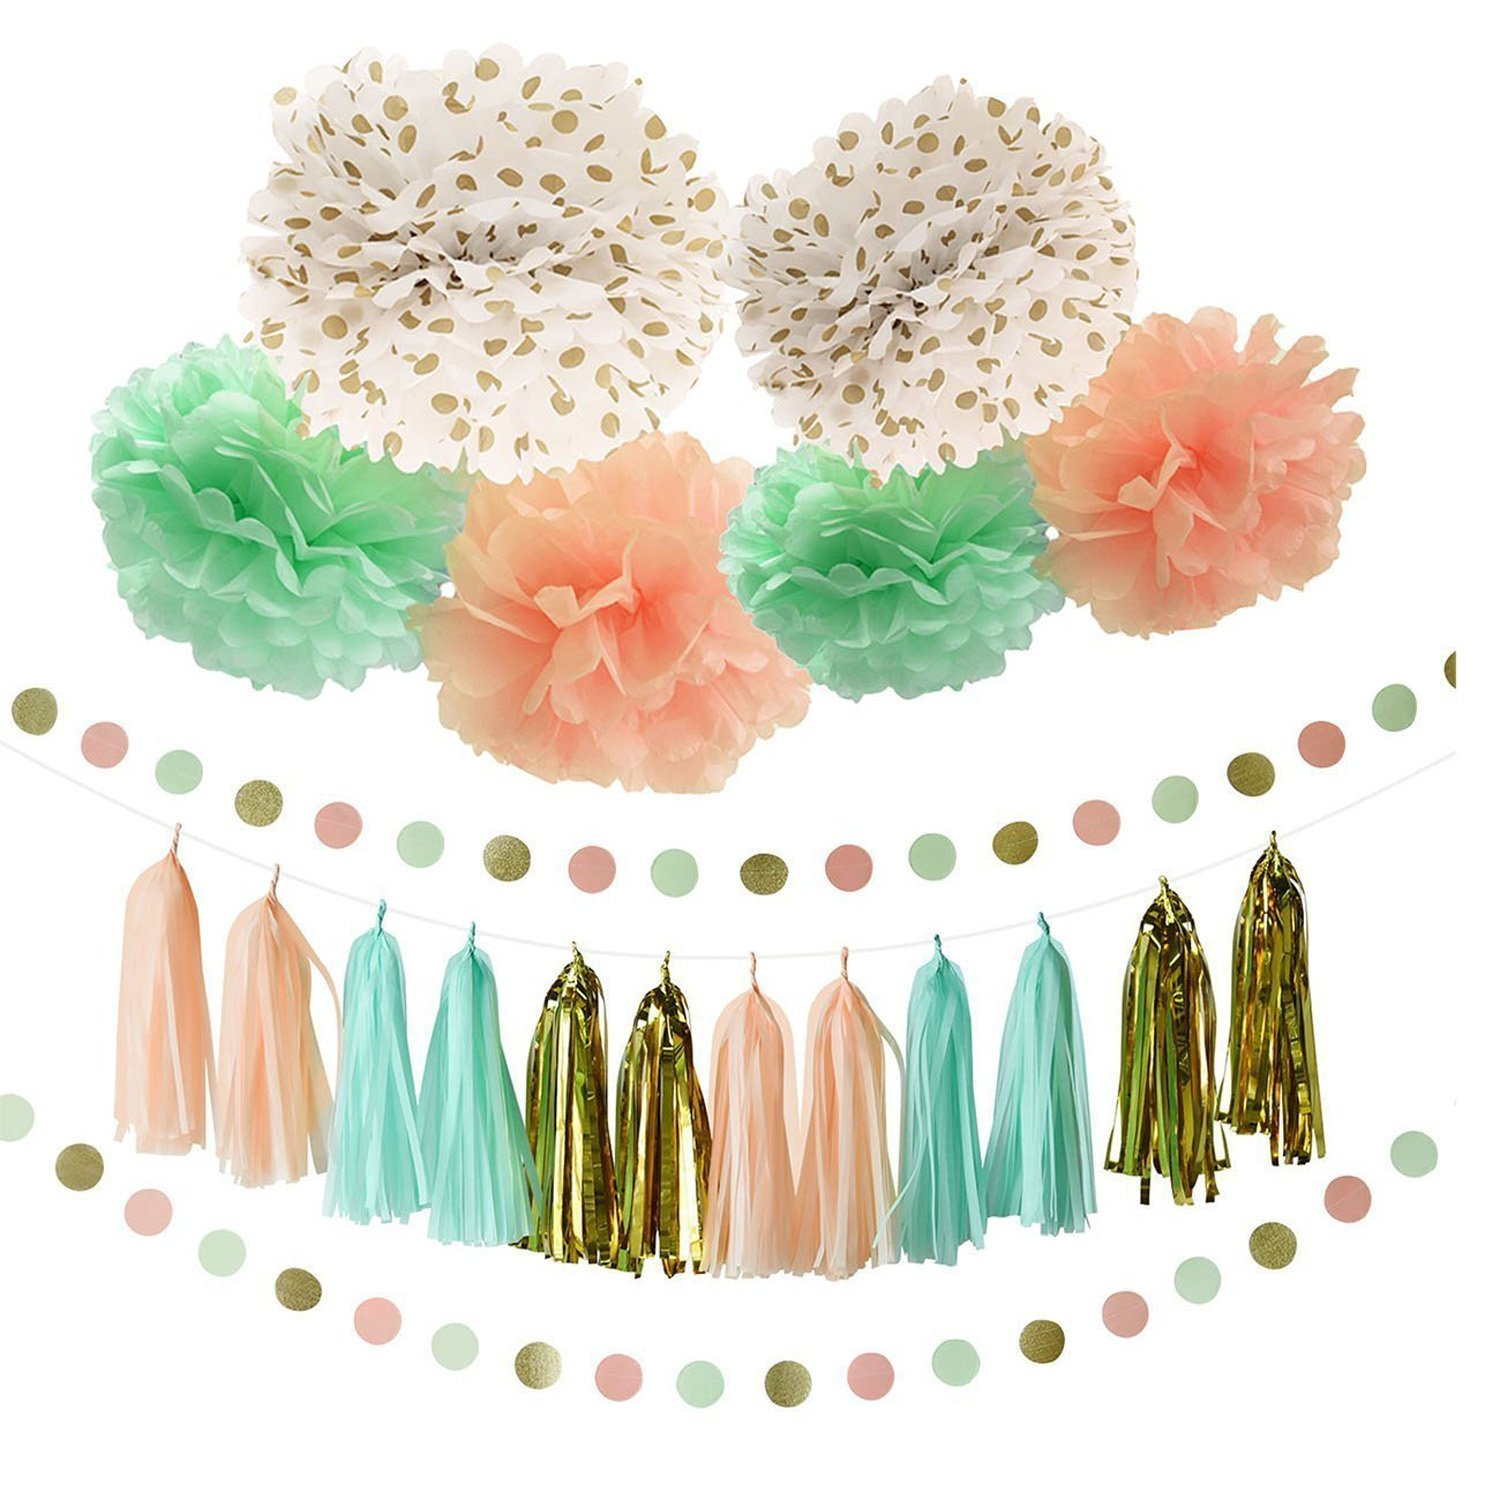 Set of 12 Peach Mint Green Ivory Paper Honeycomb Balls Girl Baby Shower Wedding Party Nursery Backdrop Decoration